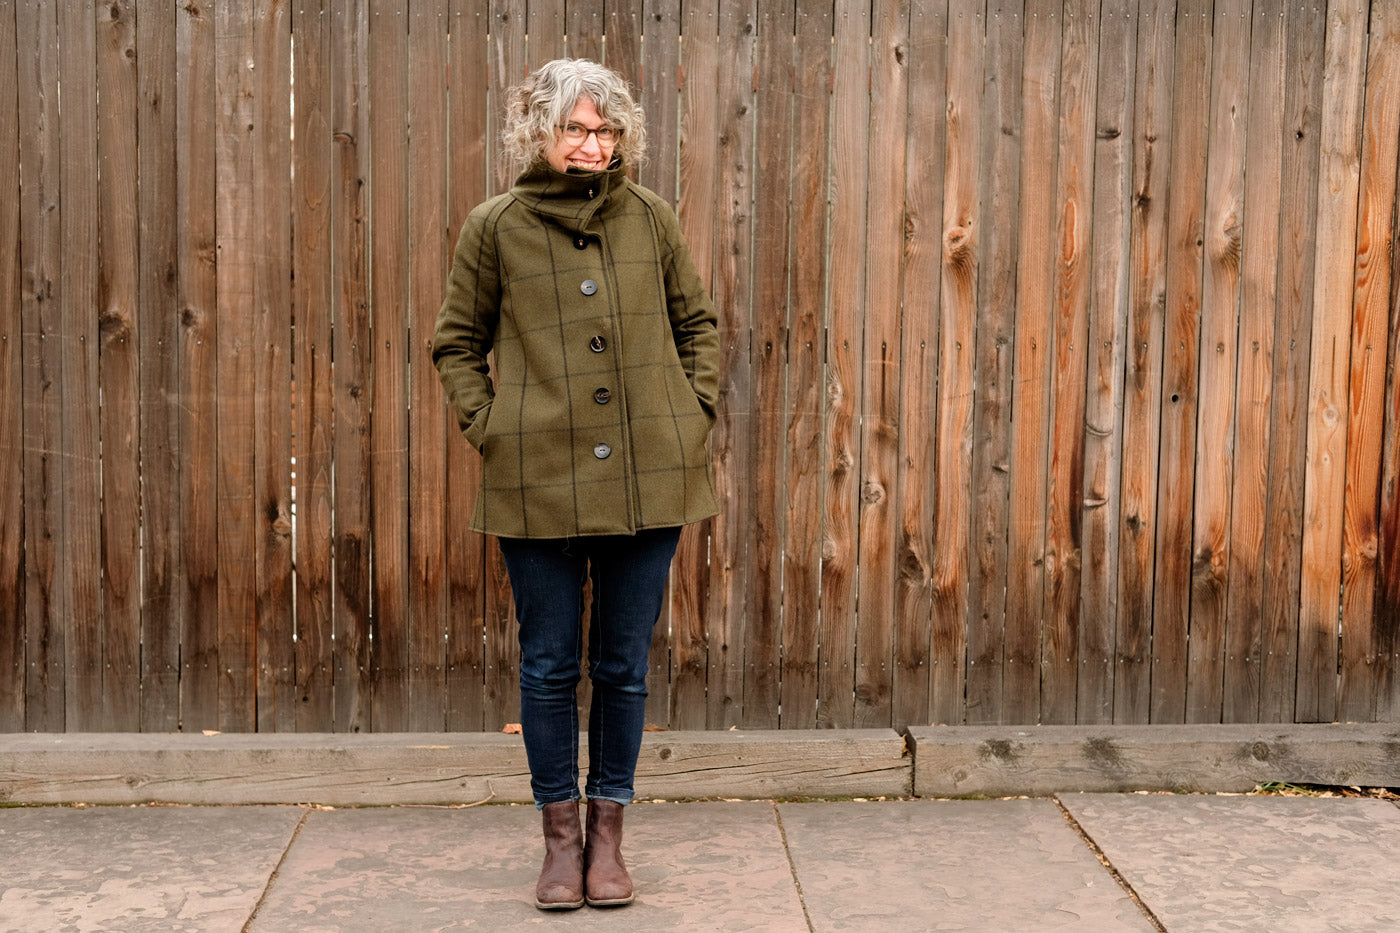 Jaime's Clare Coat in Pendleton Shirting